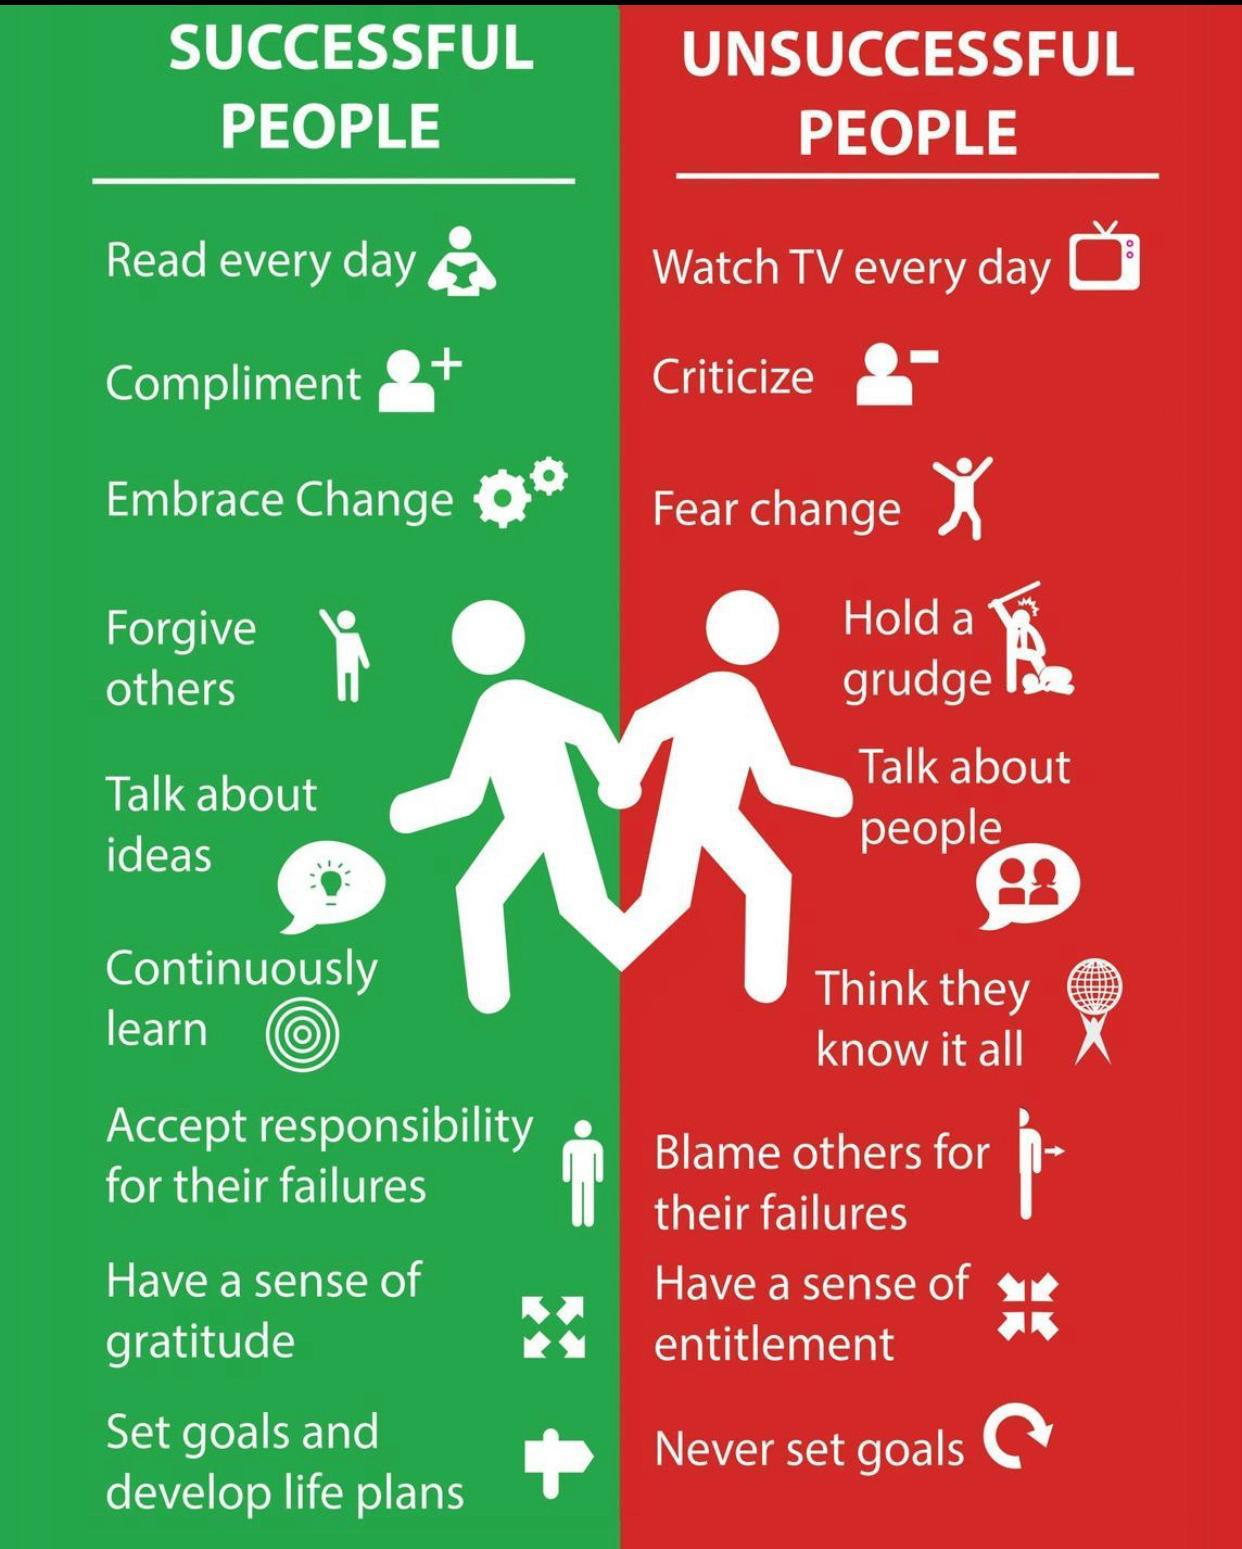 [image] successful people vs unsuccessful people